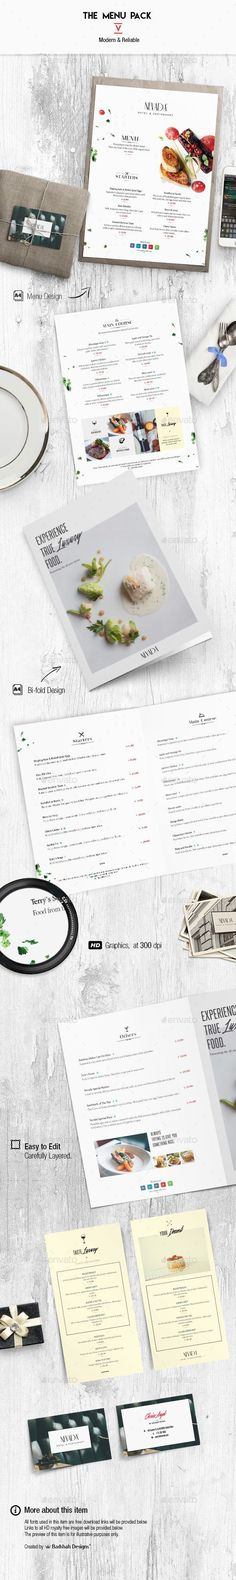 The fifth version of Menu design as a product from Badshah designs. Restaurant & hotel branding